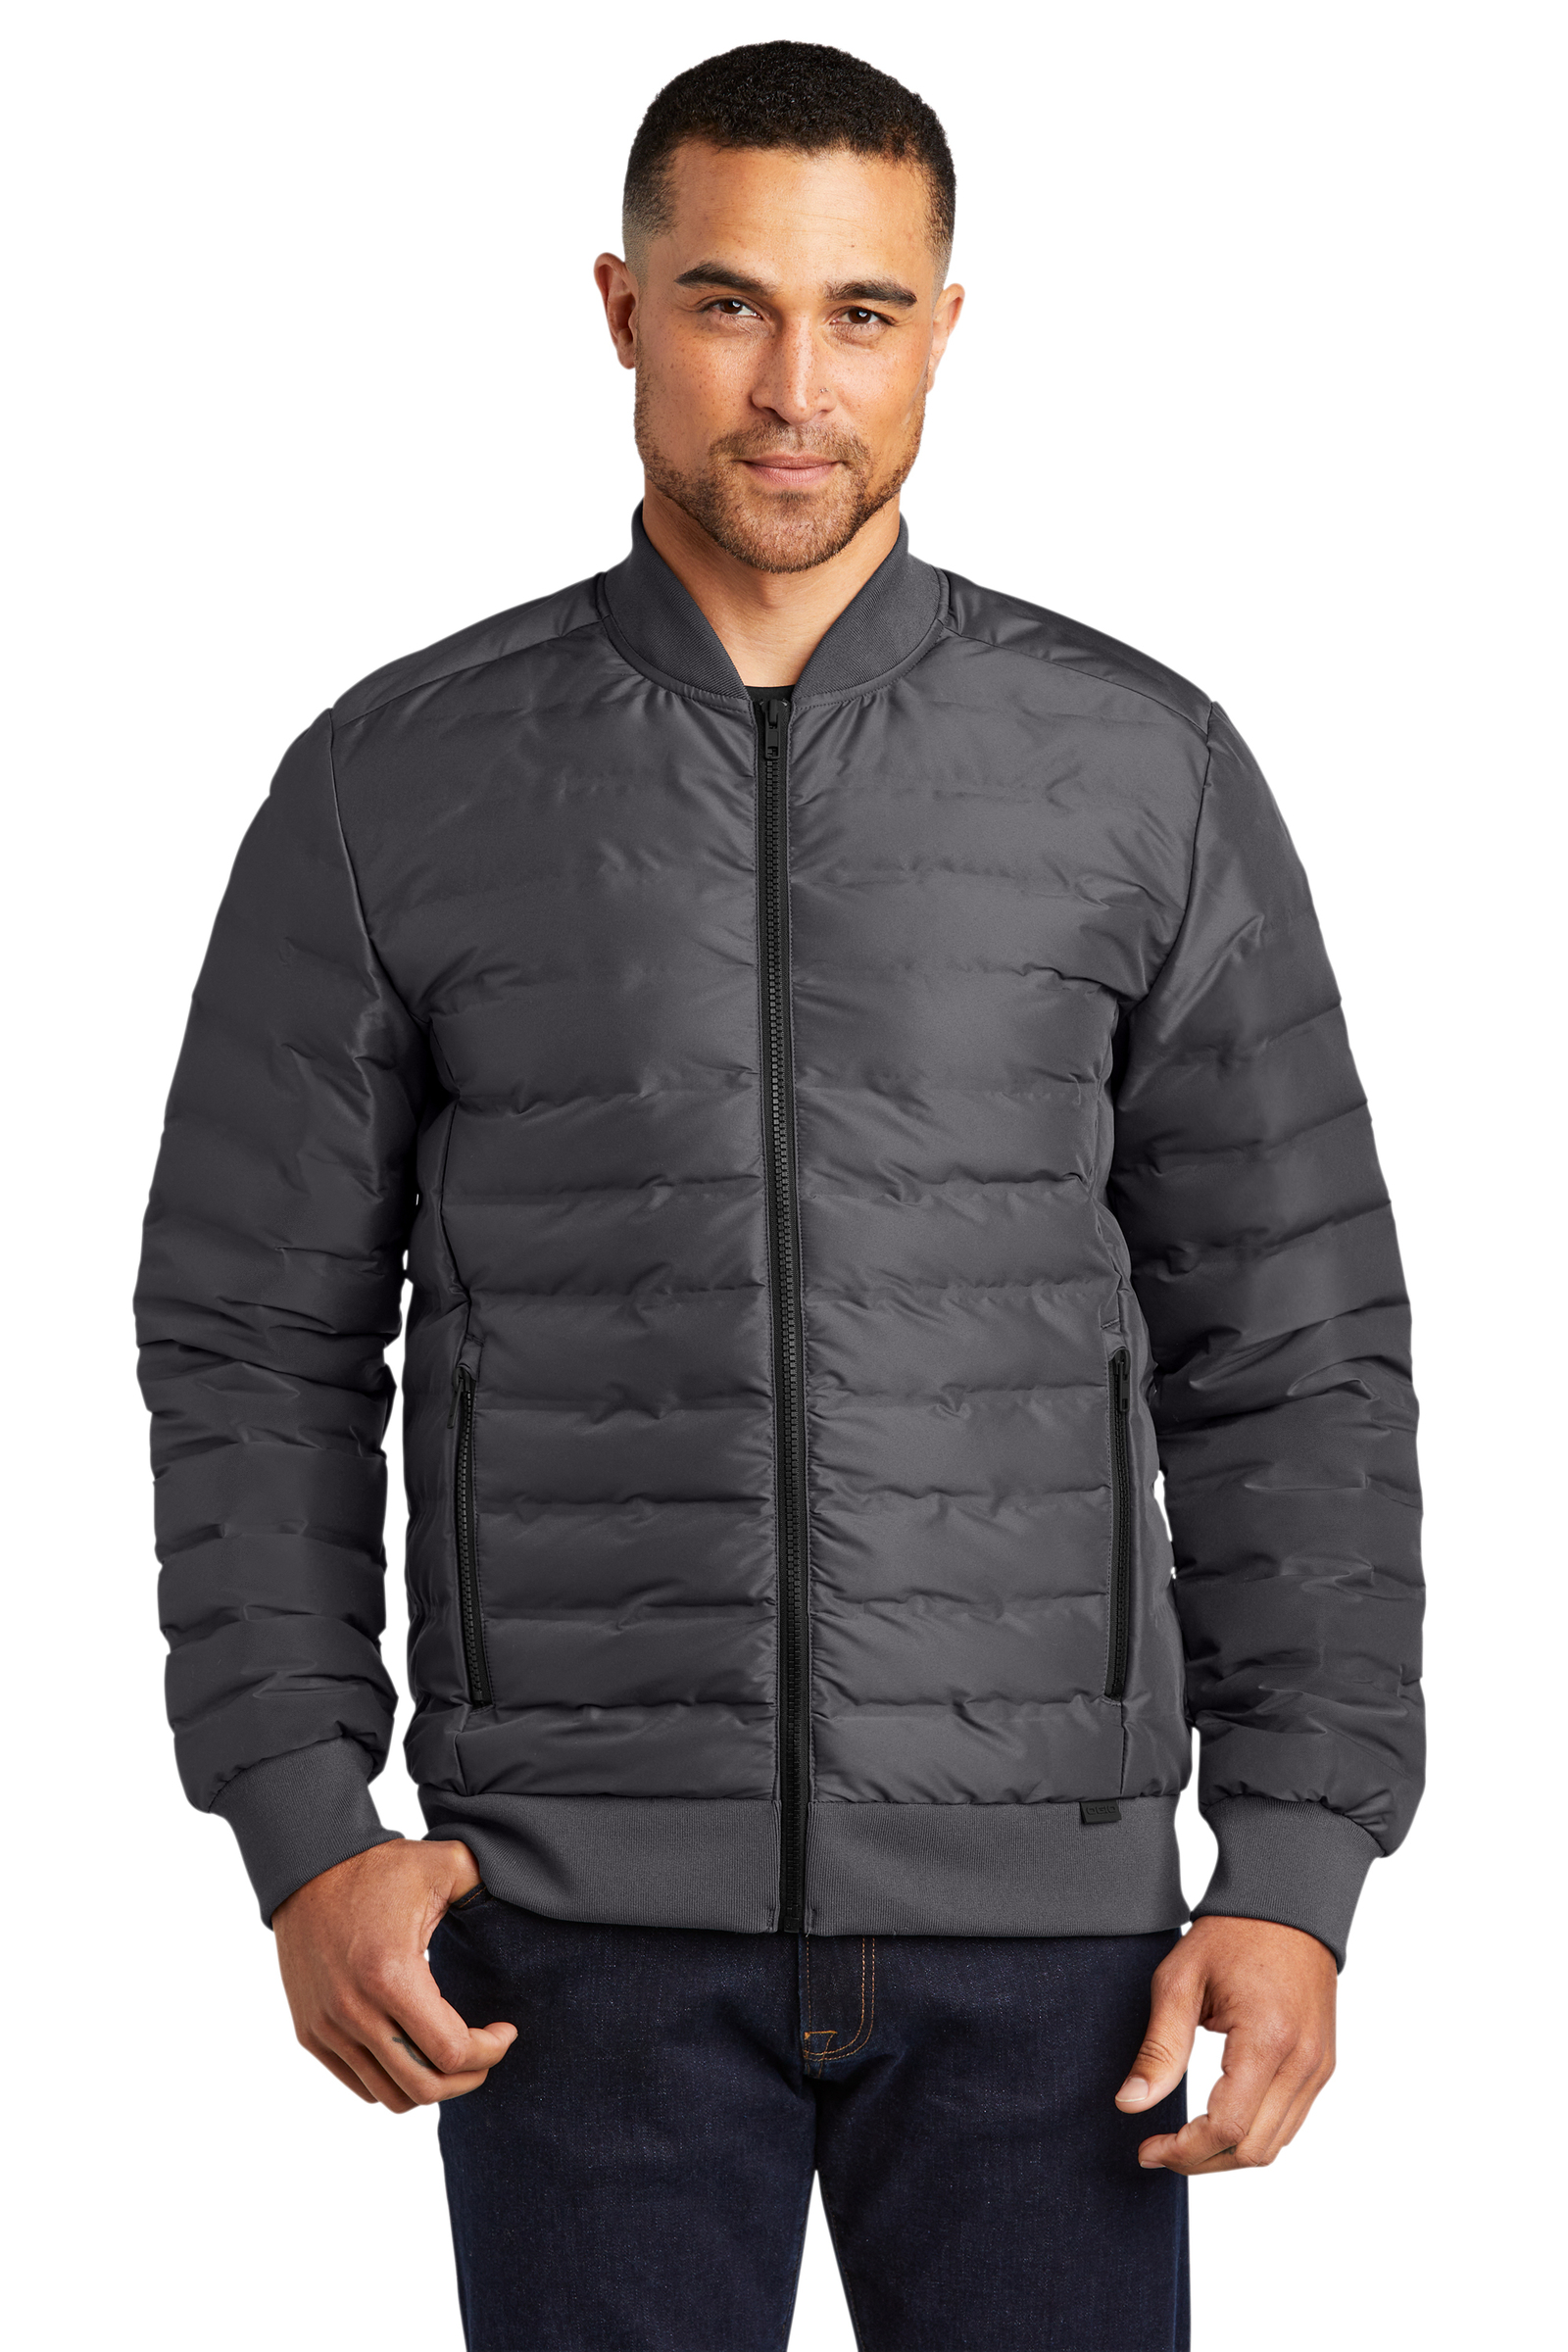 OGIO Embroidered Men's Street Puffy Full-Zip Jacket